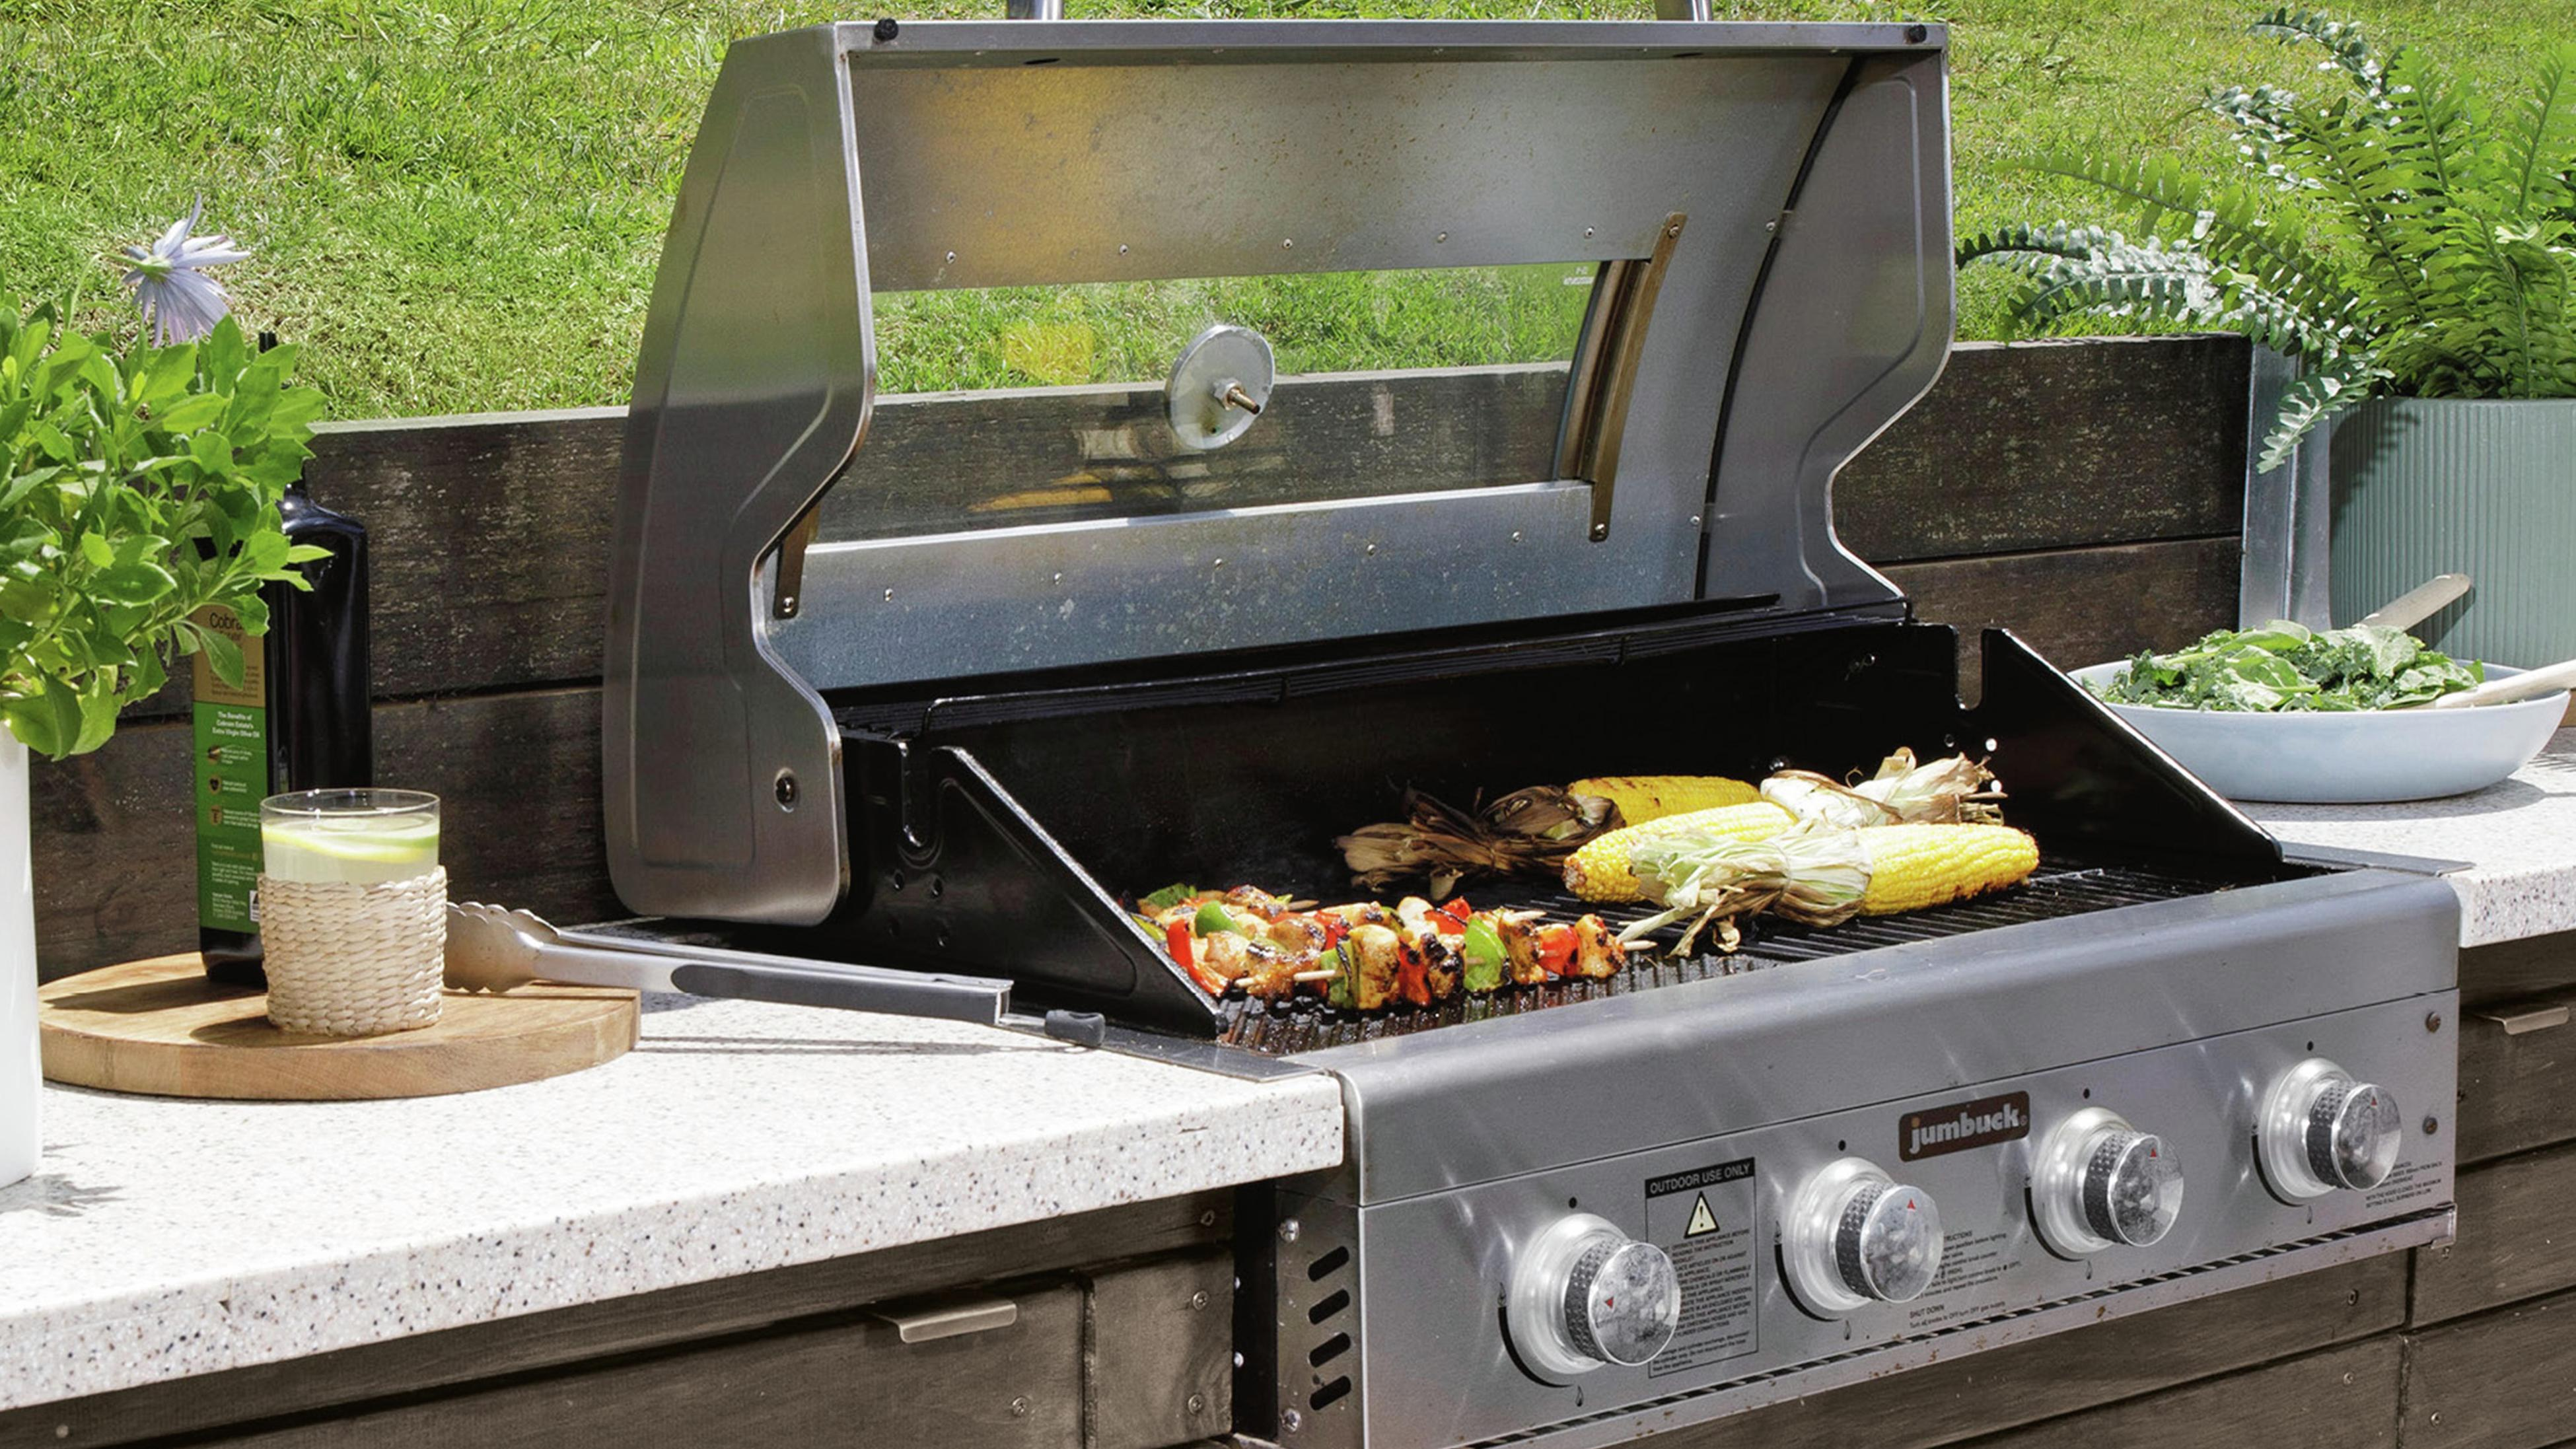 Barbecue and benchtop in outdoor space cut out of lawn slope